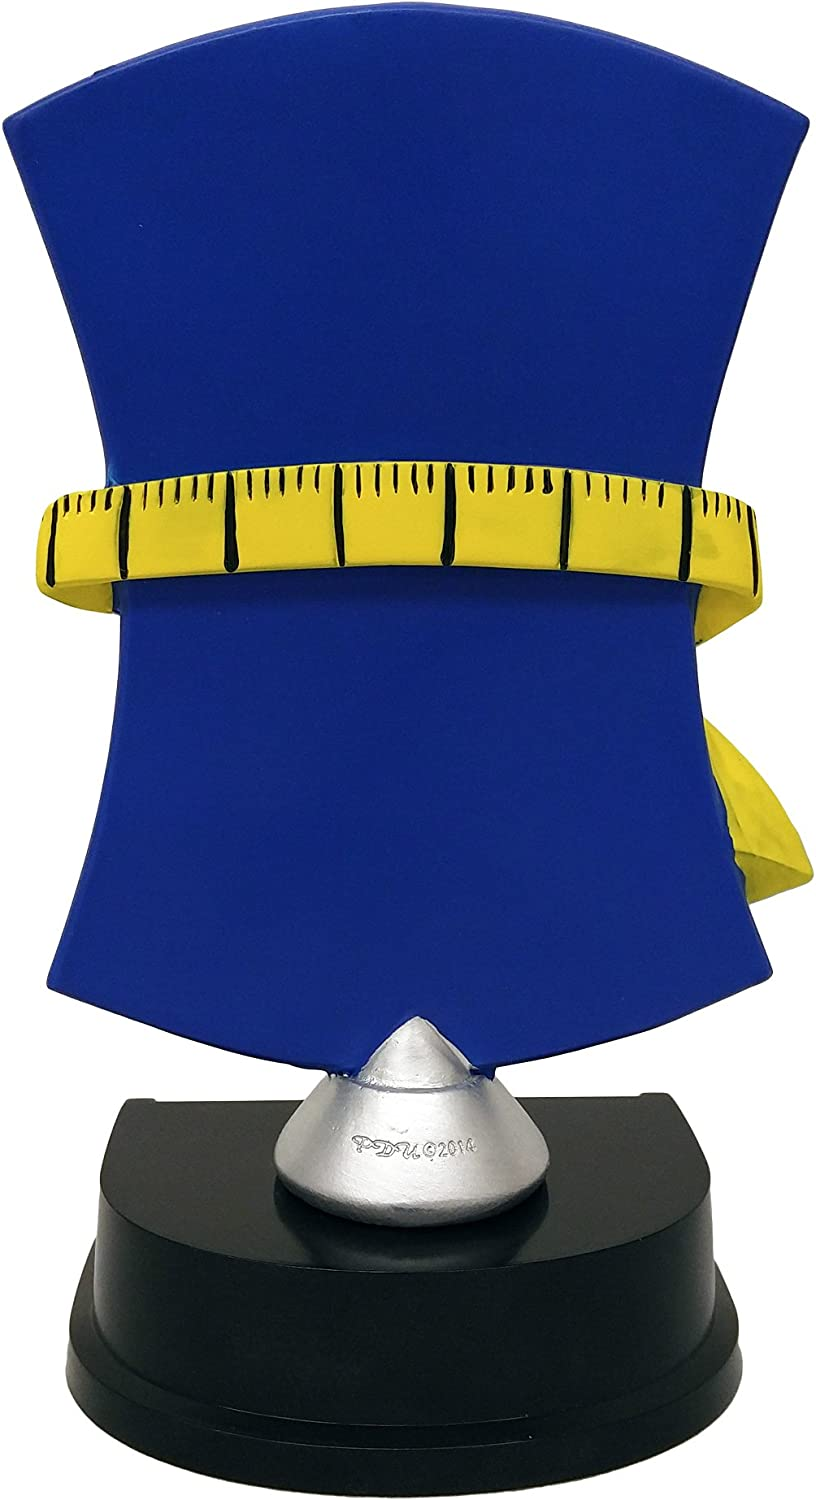 Scale Weight Loss Trophy Biggest Loser Competition Award